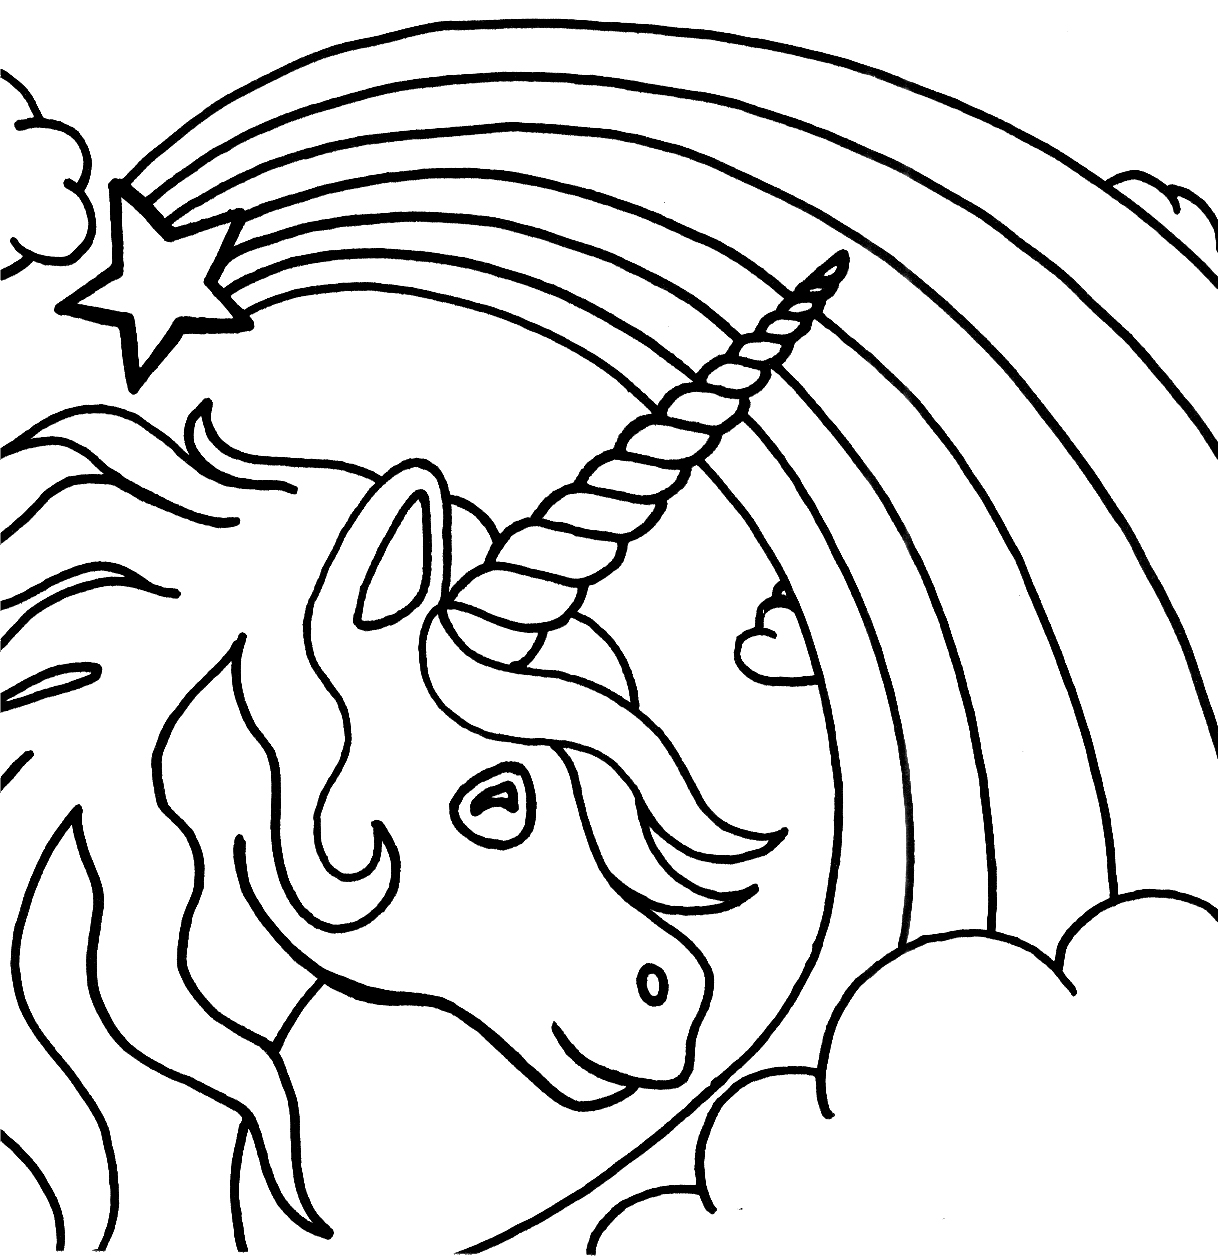 unicorn coloring pages for kids - Children Coloring Pages